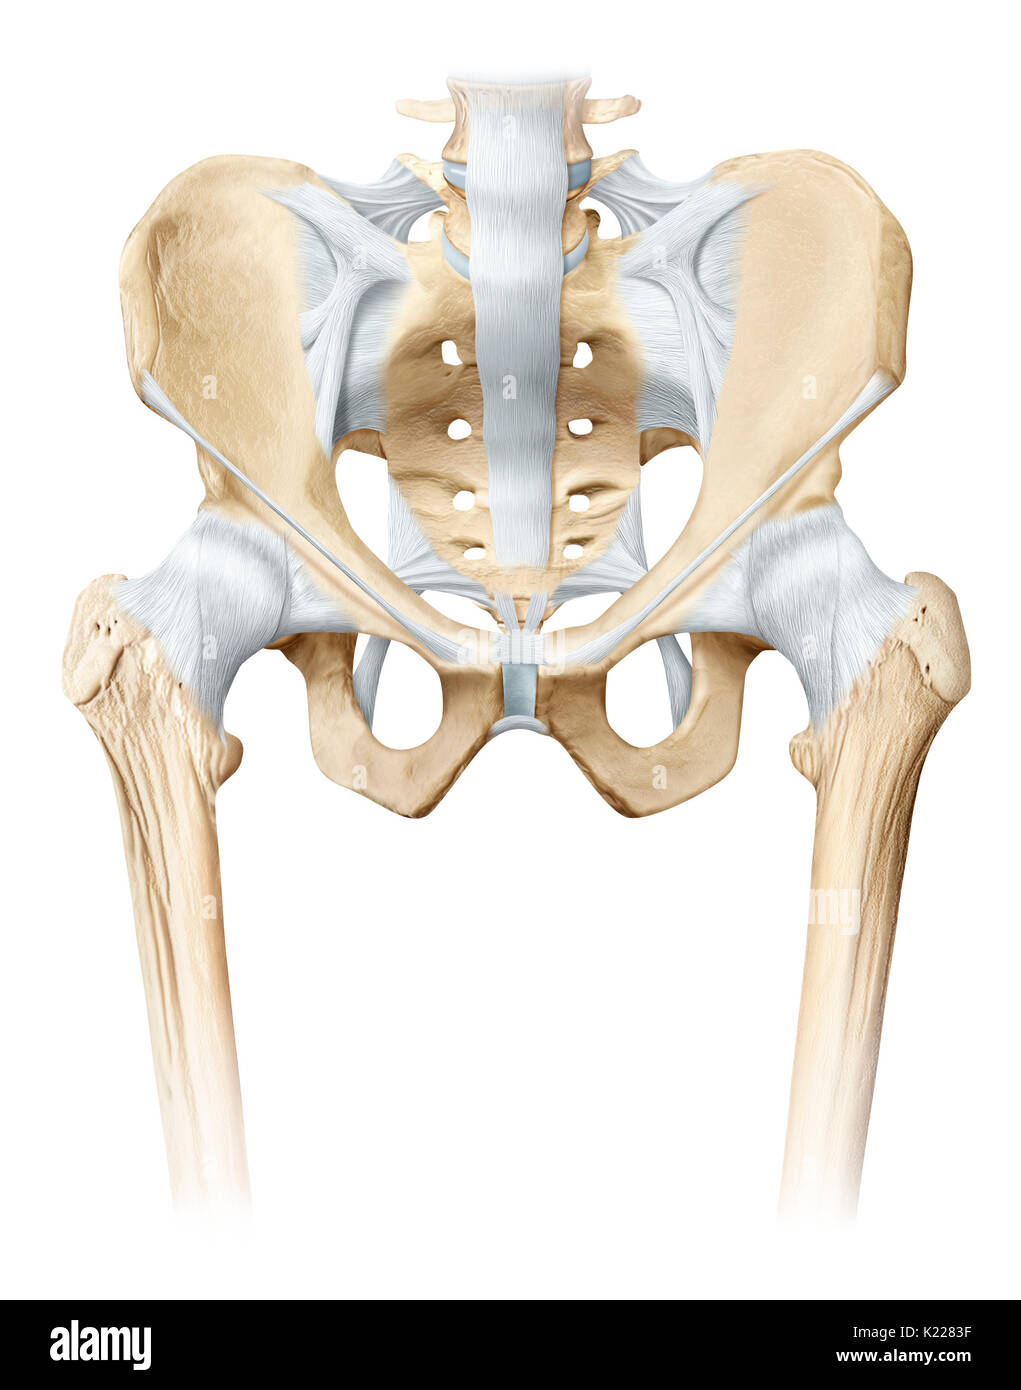 Synovial Joint Stock Photos & Synovial Joint Stock Images - Alamy